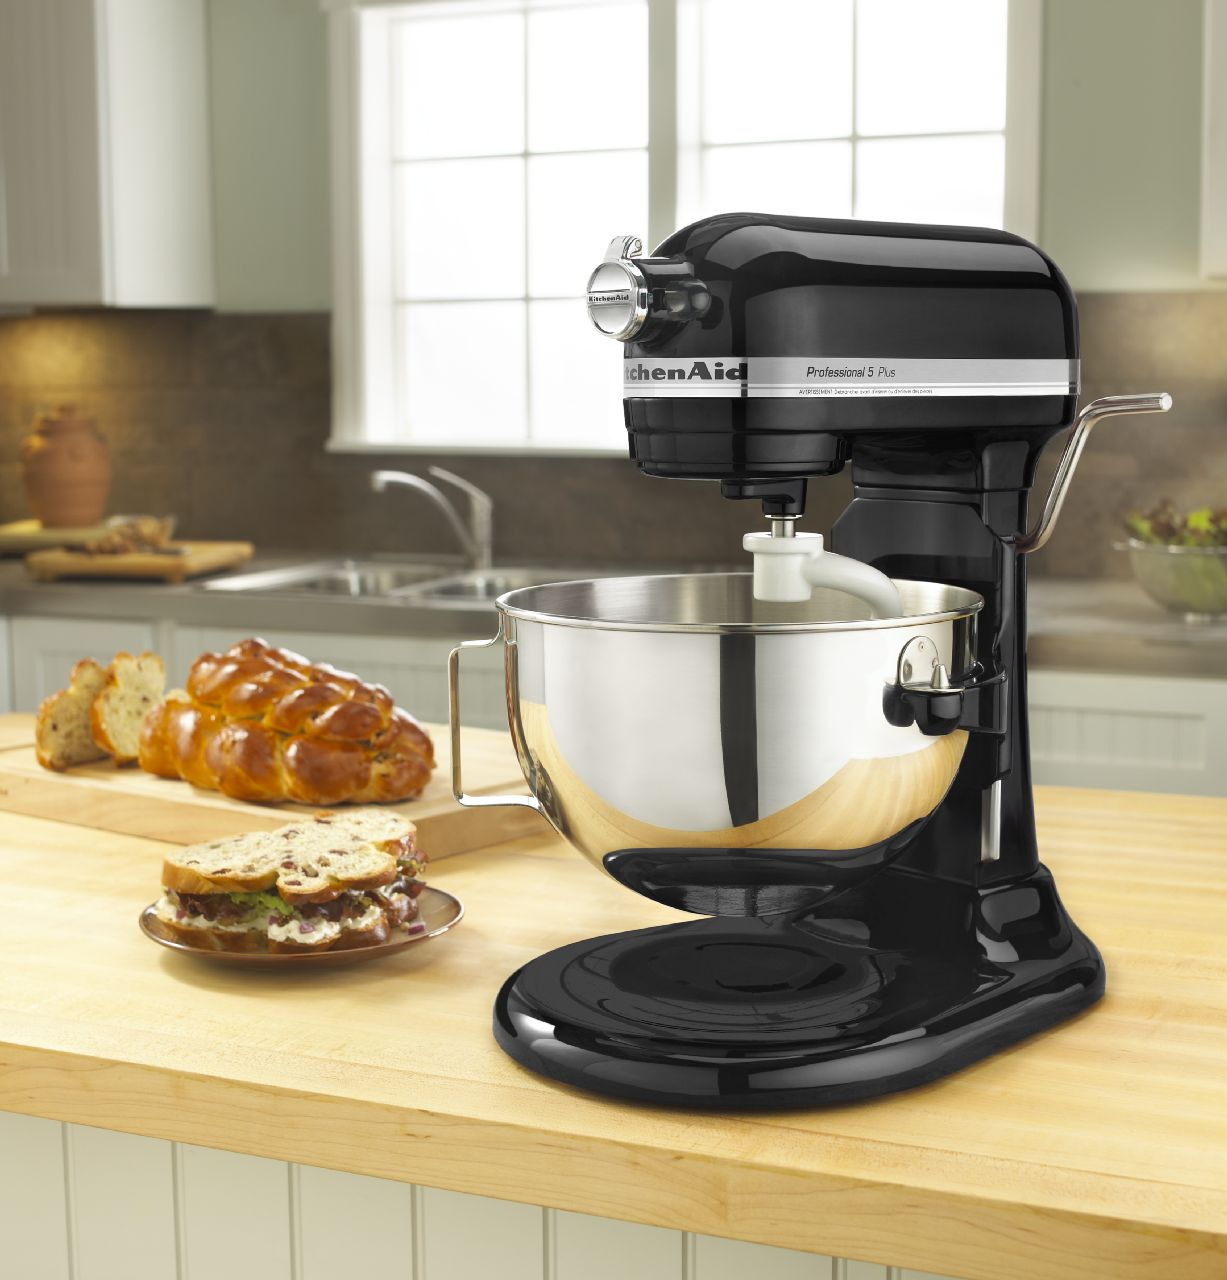 KitchenAid-Professional-5-Plus-Series-5-Quart-Bowl-Lift-Stand-Mixer-KV25G0X thumbnail 10